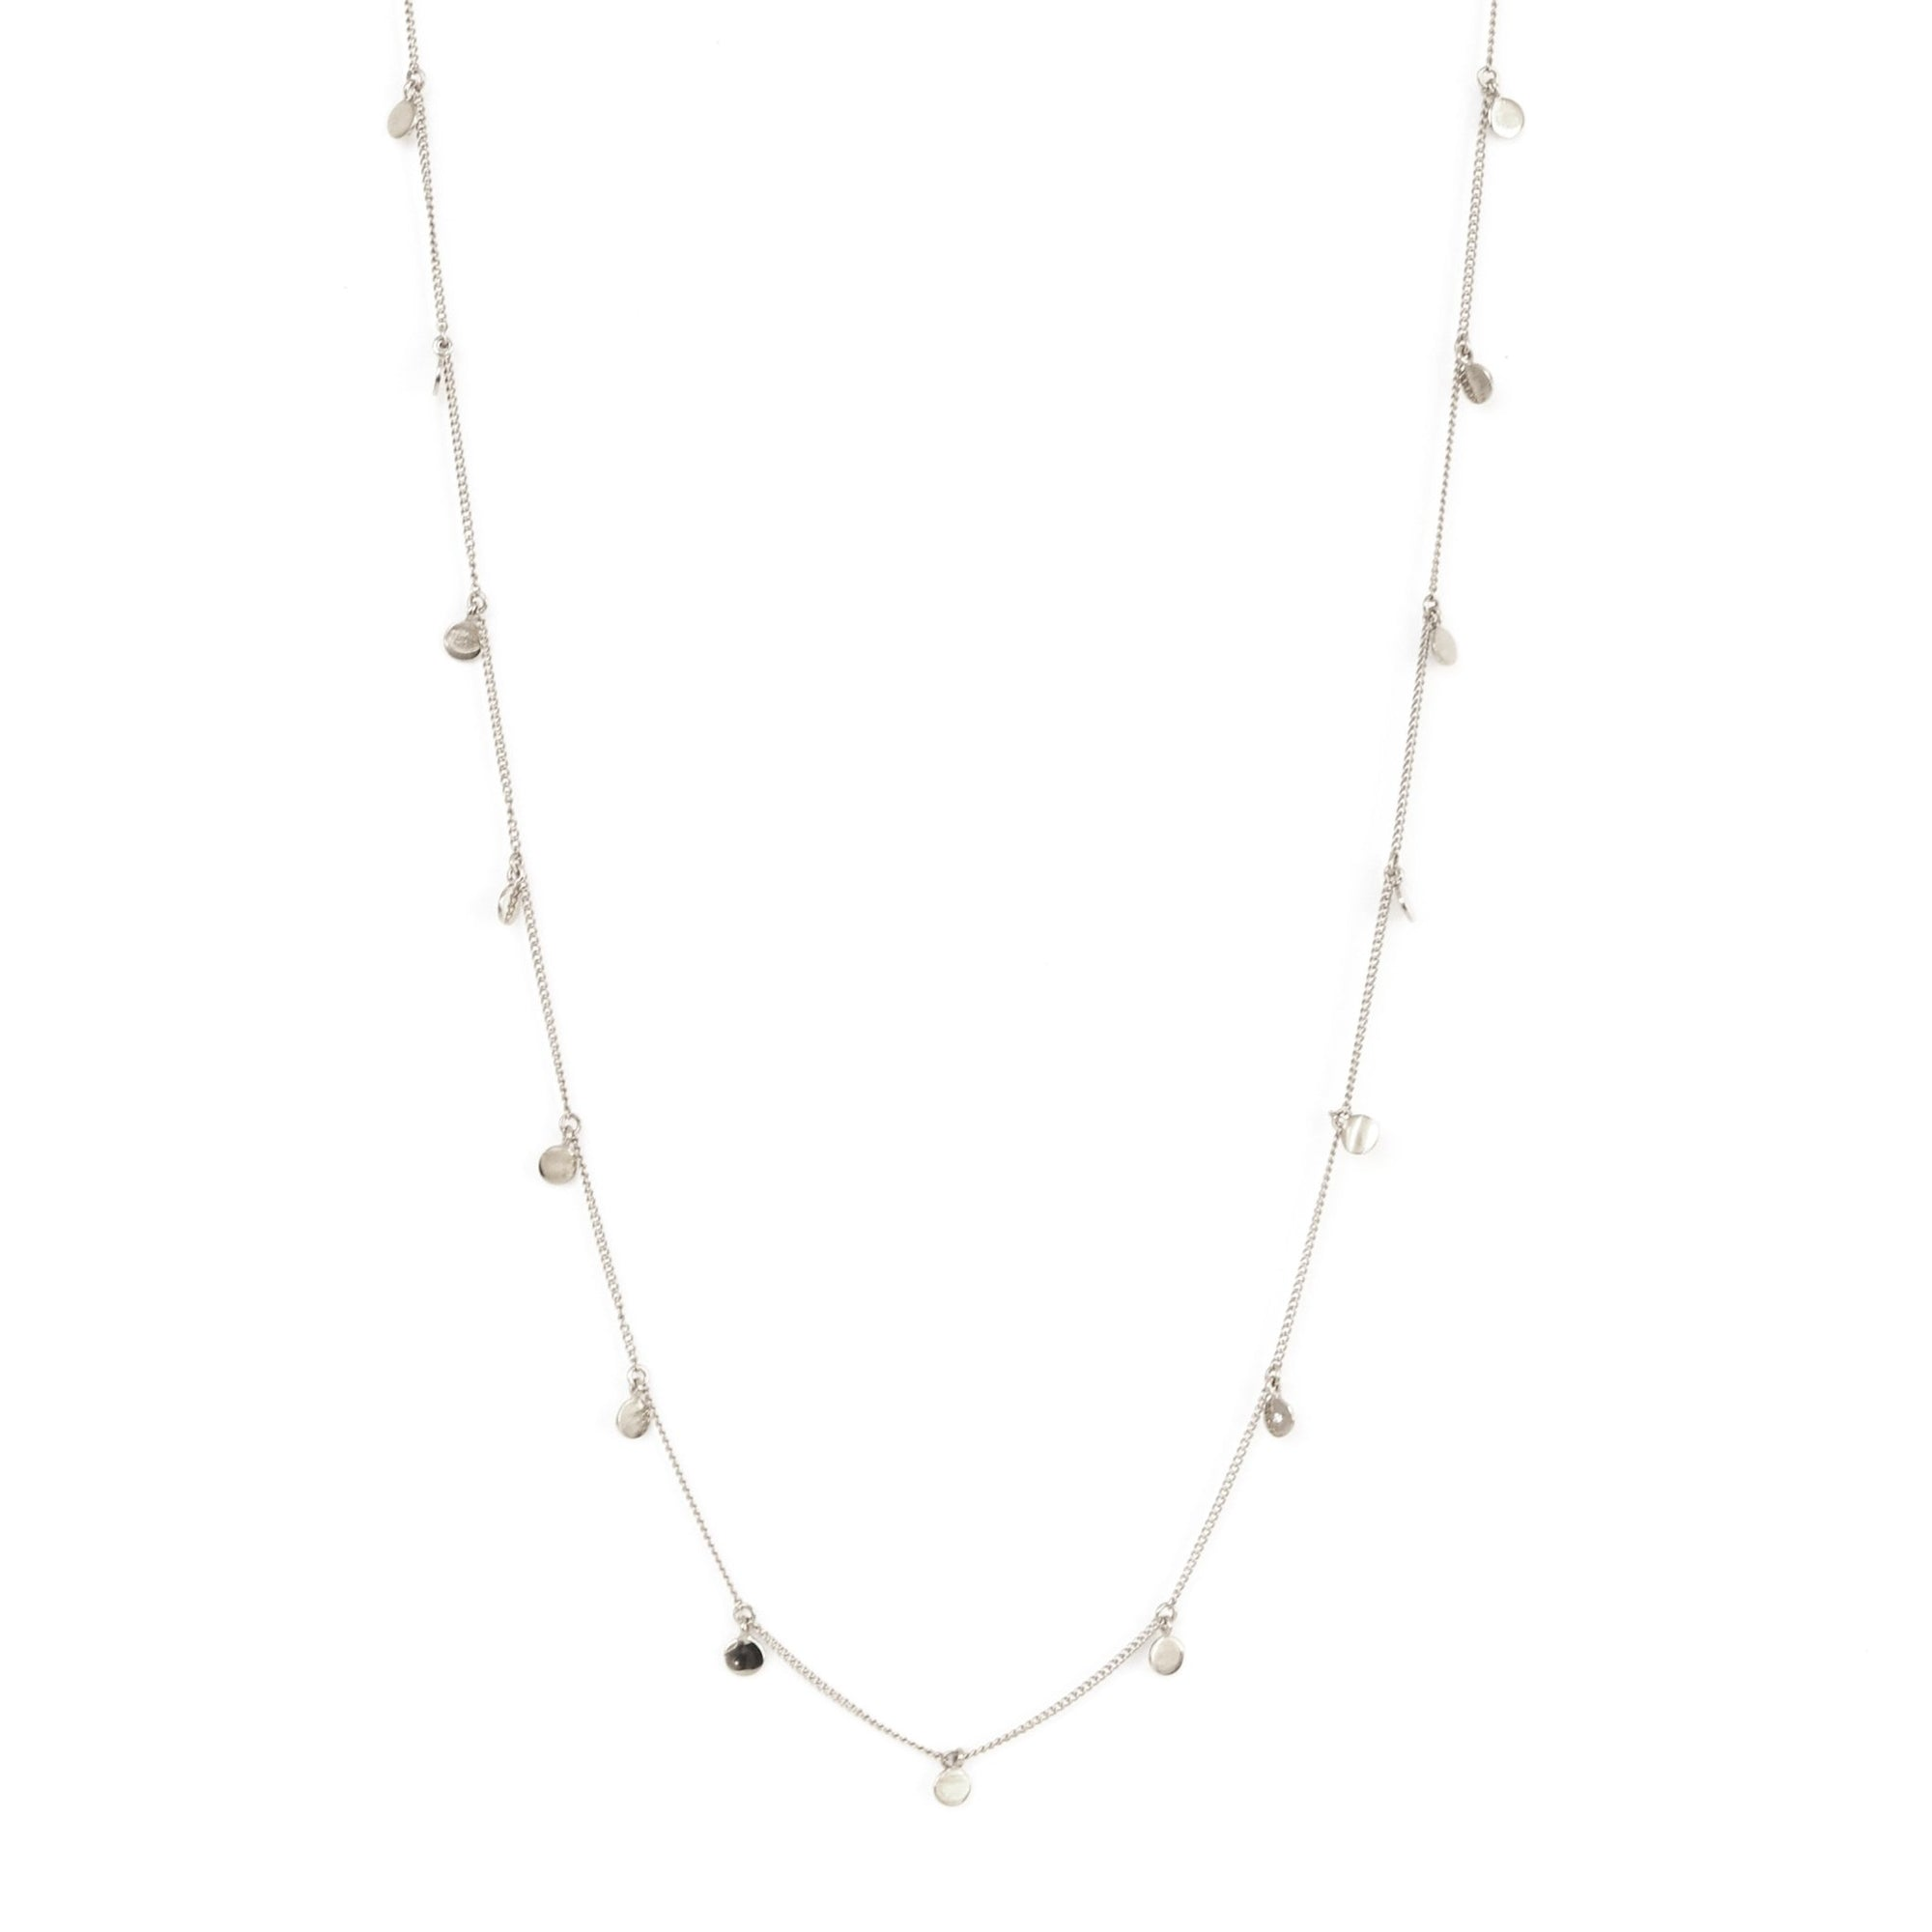 POISE LONG DISK NECKLACE - SILVER - SO PRETTY CARA COTTER